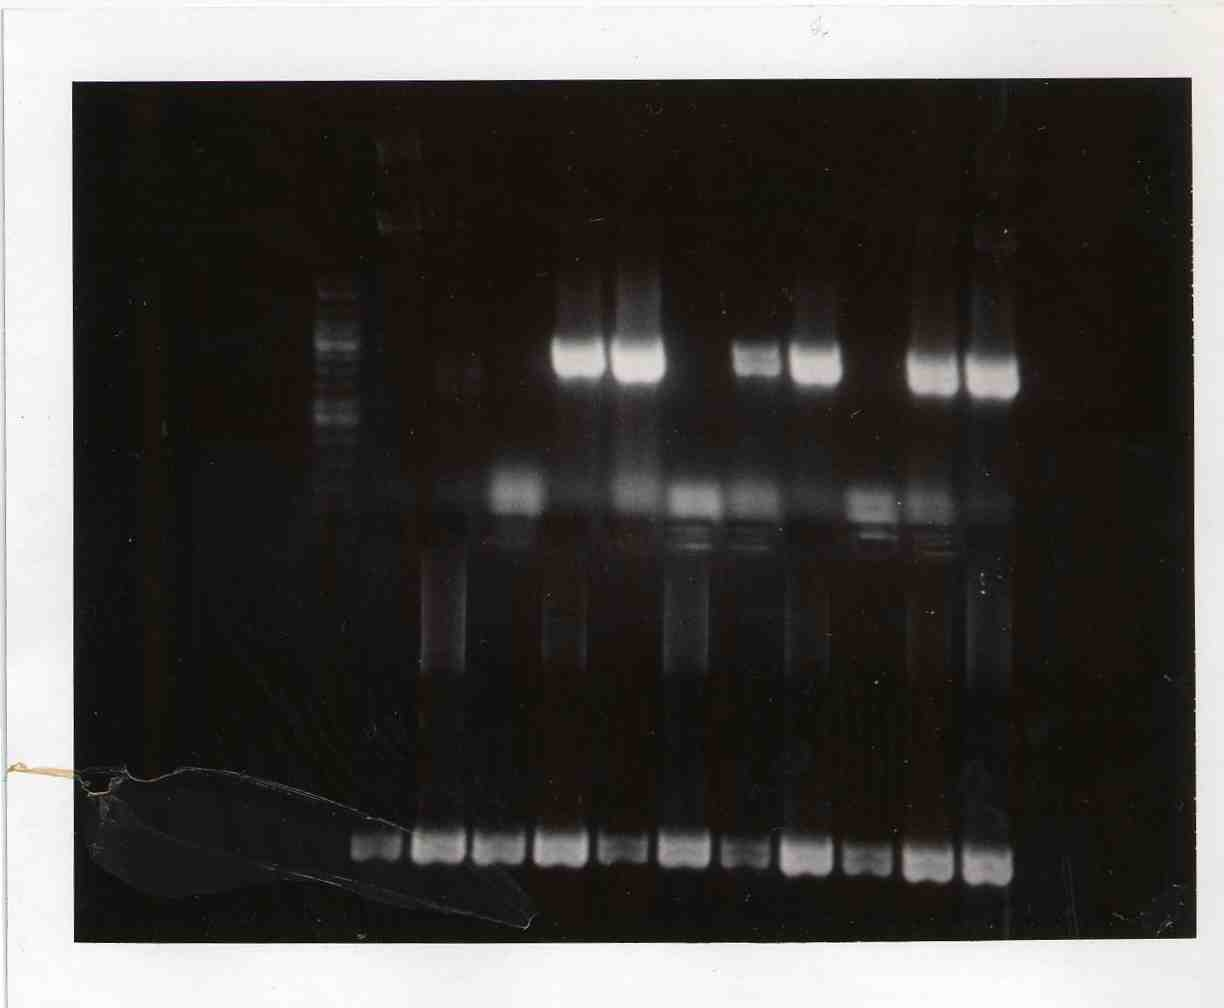 Image:Gel mod3day1 PCR products.JPG